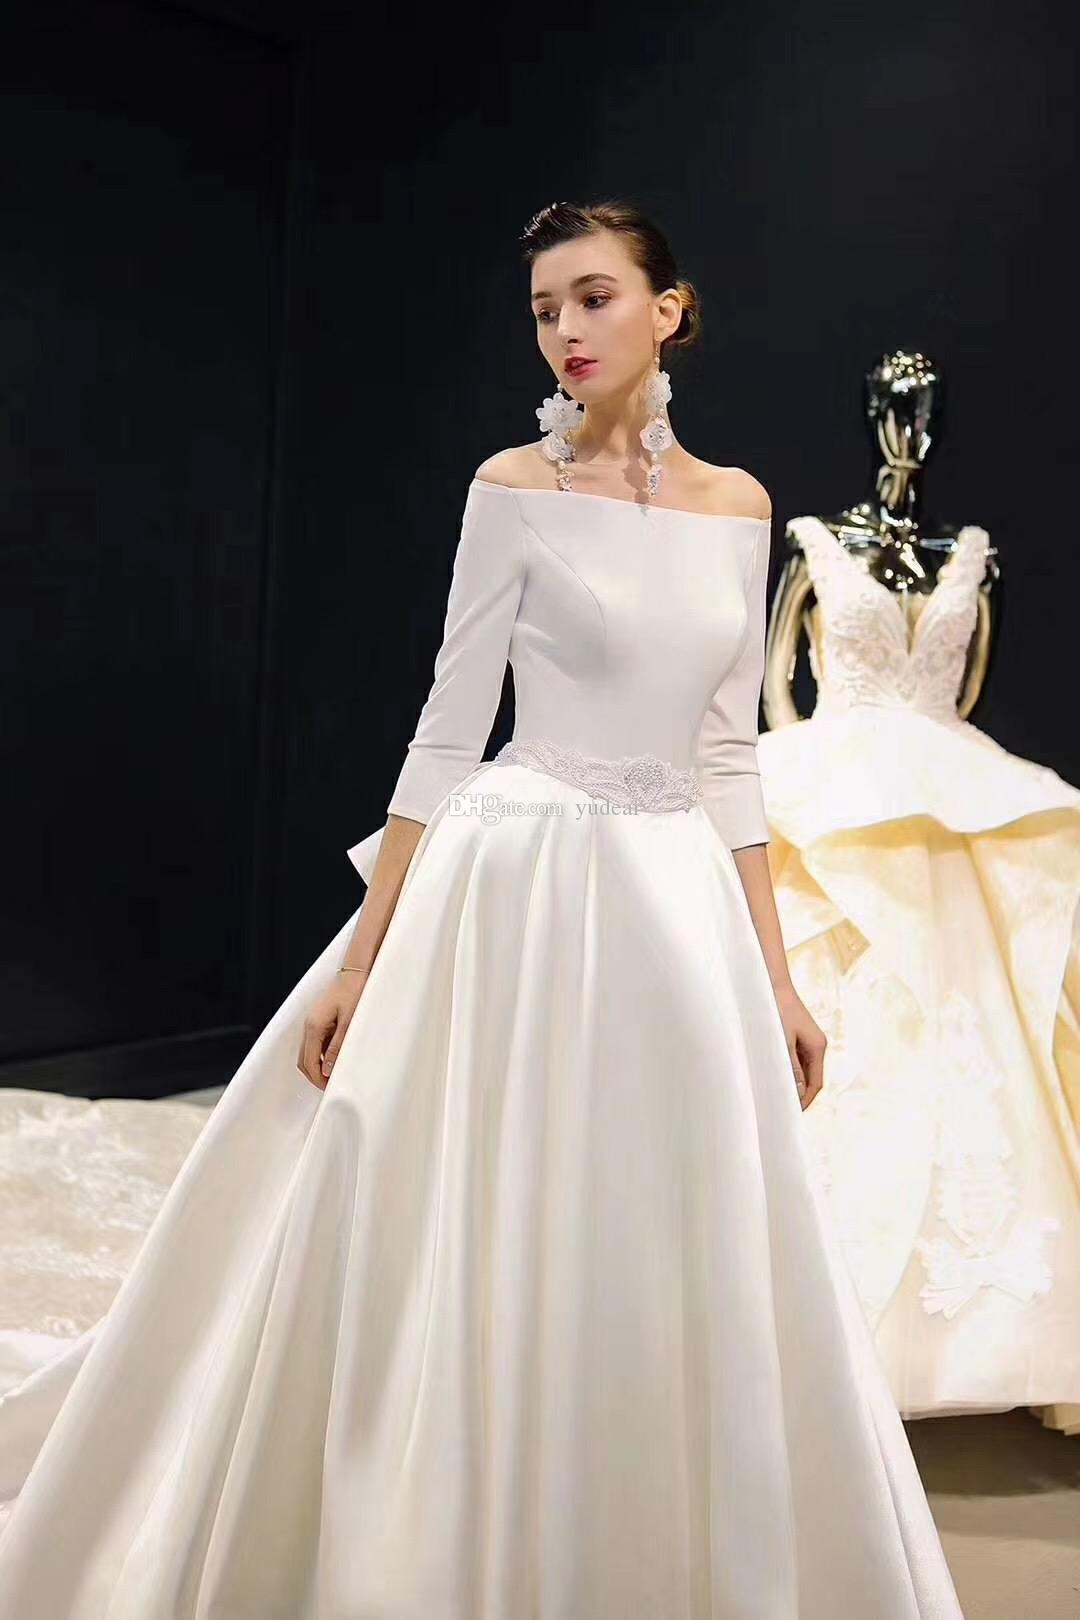 Charming Off Shoulder 2019 Women Wedding Dresses 3/4 Long Sleeves Satin Bridal Dresses Formal Chapel Train Wedding Gowns for Sexy Big Girls